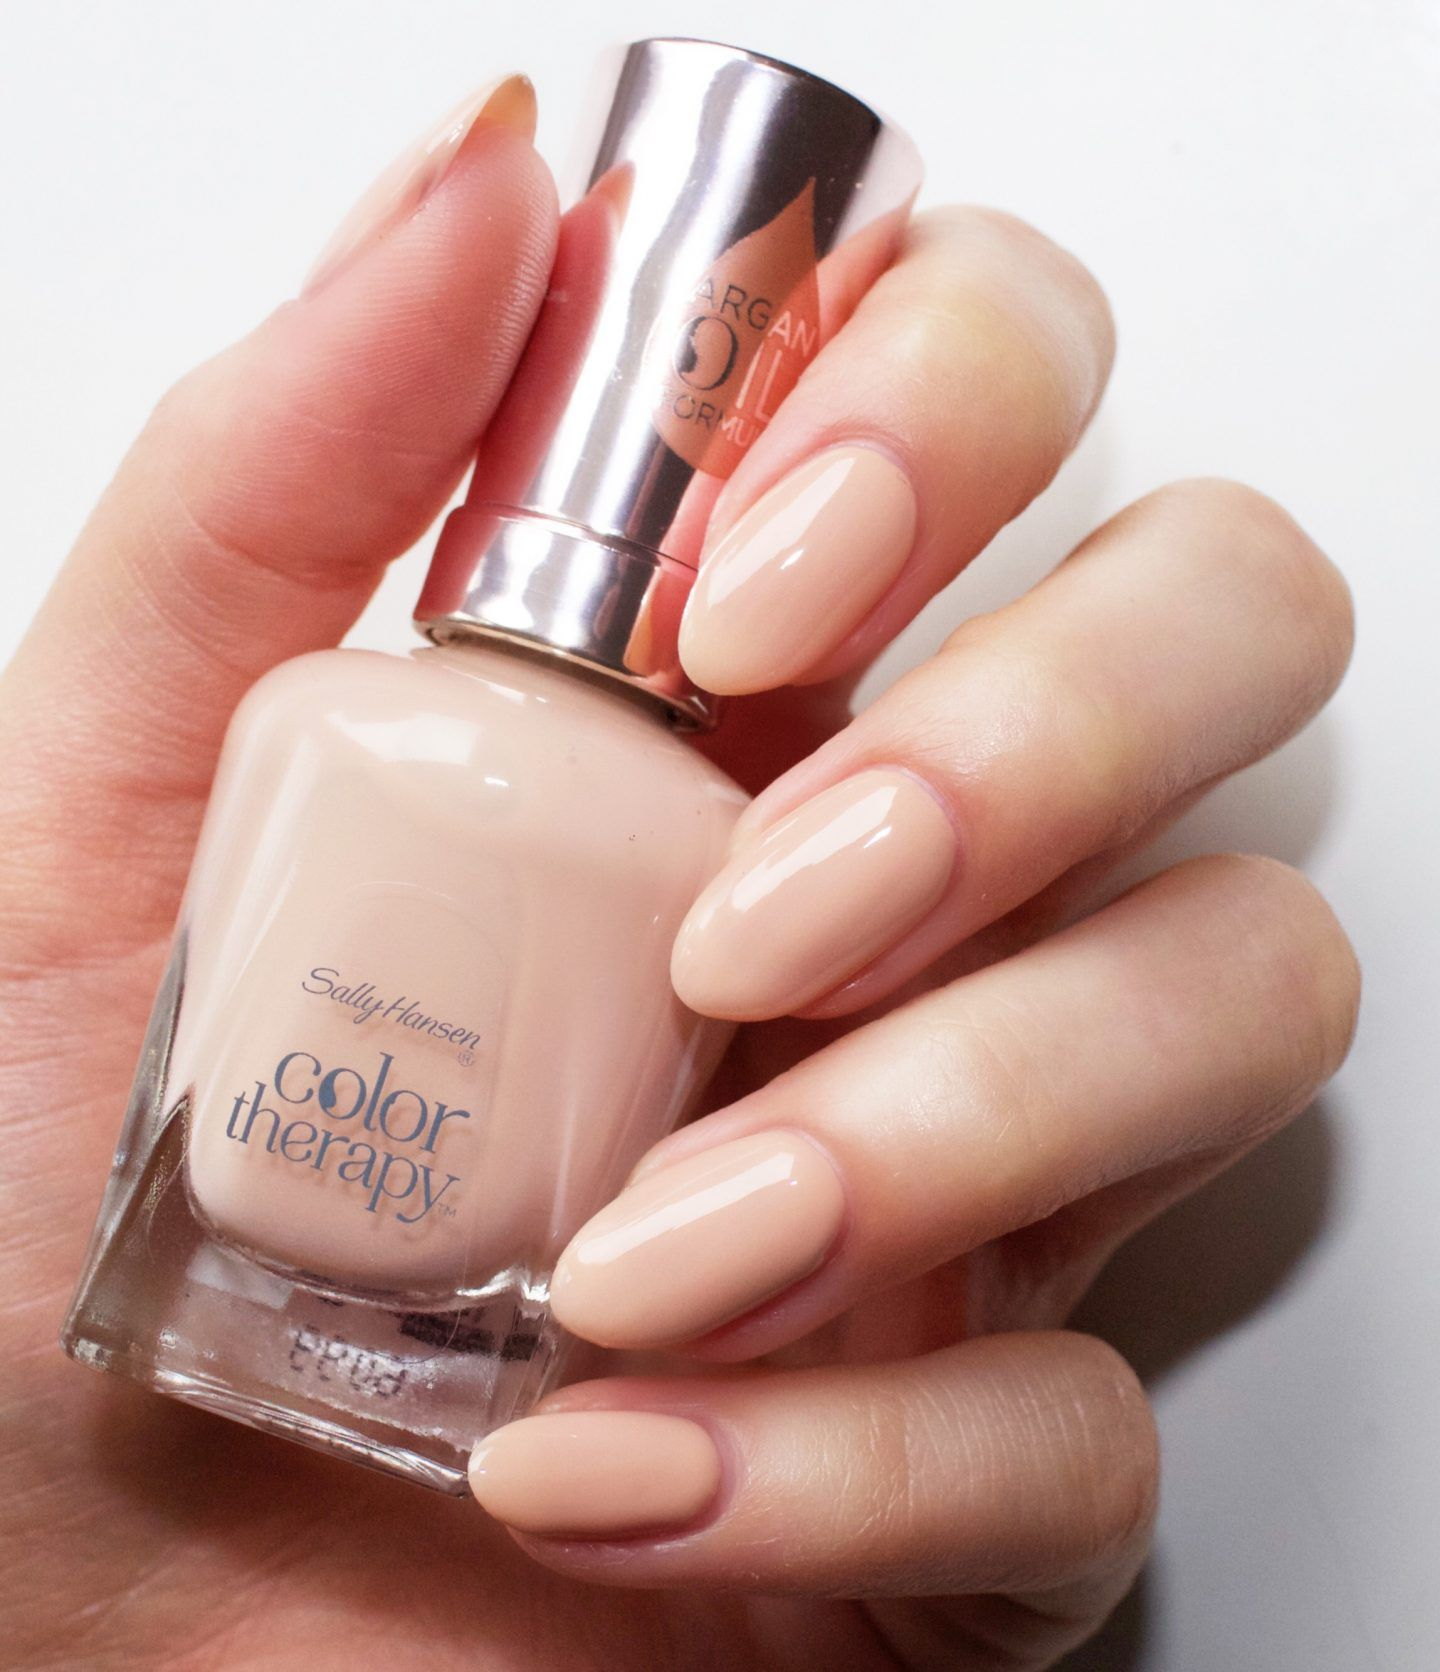 Sally Hansen Color Therapy Swatches And Review Sally Hansen Nail Polish Sally Hansen Color Therapy Sally Hansen Nails